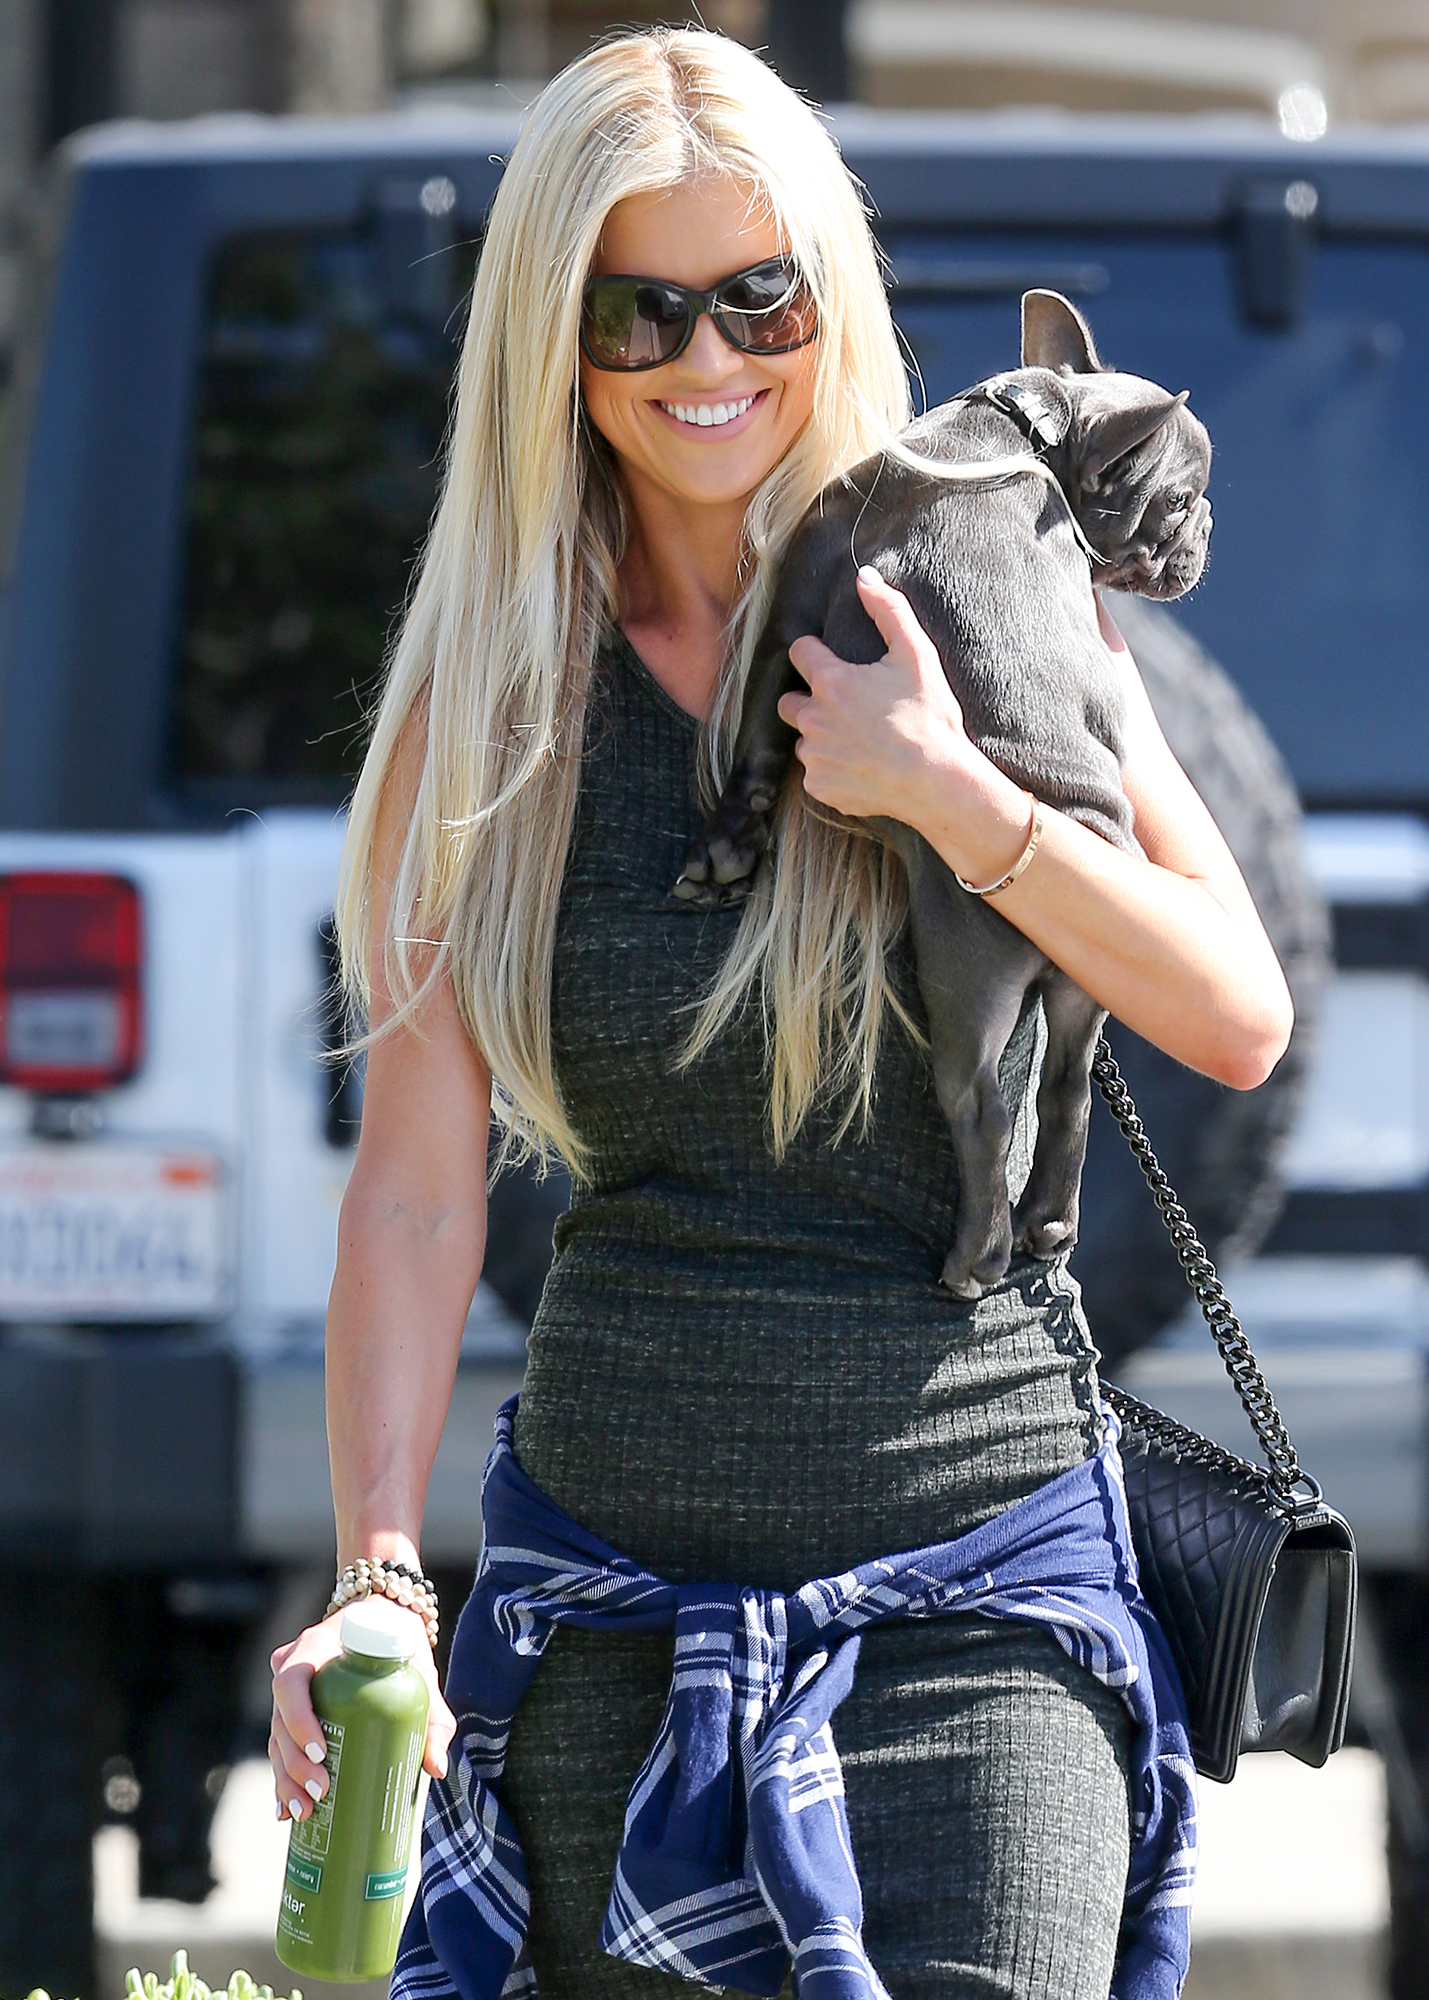 EXCLUSIVE: Christina El Moussa picks up a green juice with her dog Cash